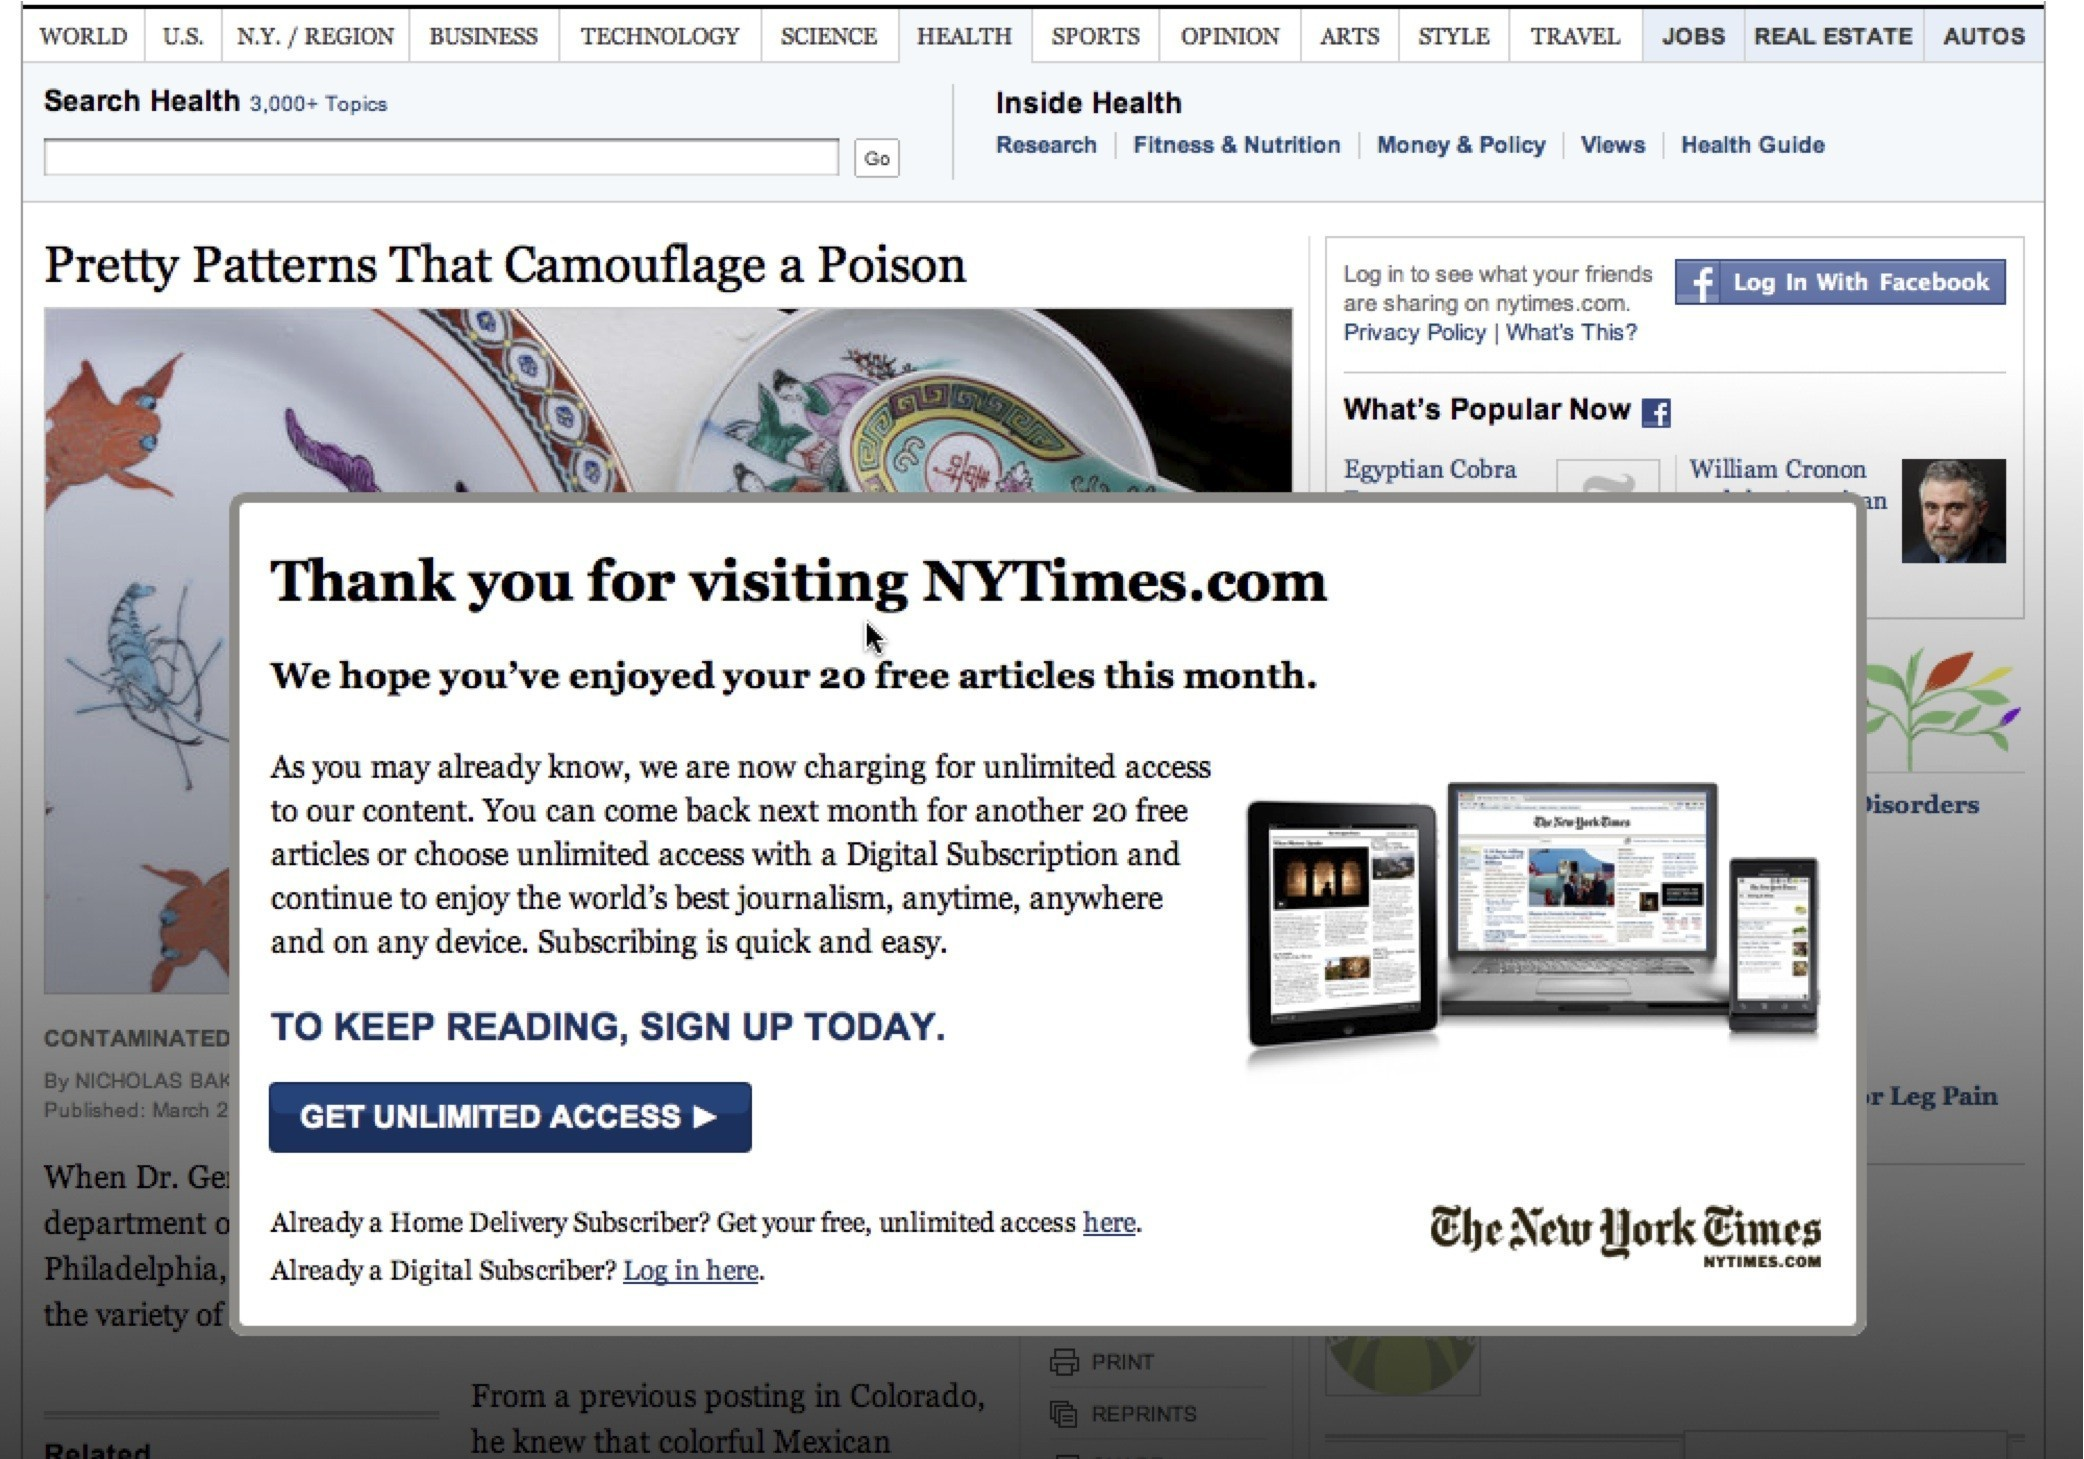 Paywall popup dialog (2011)